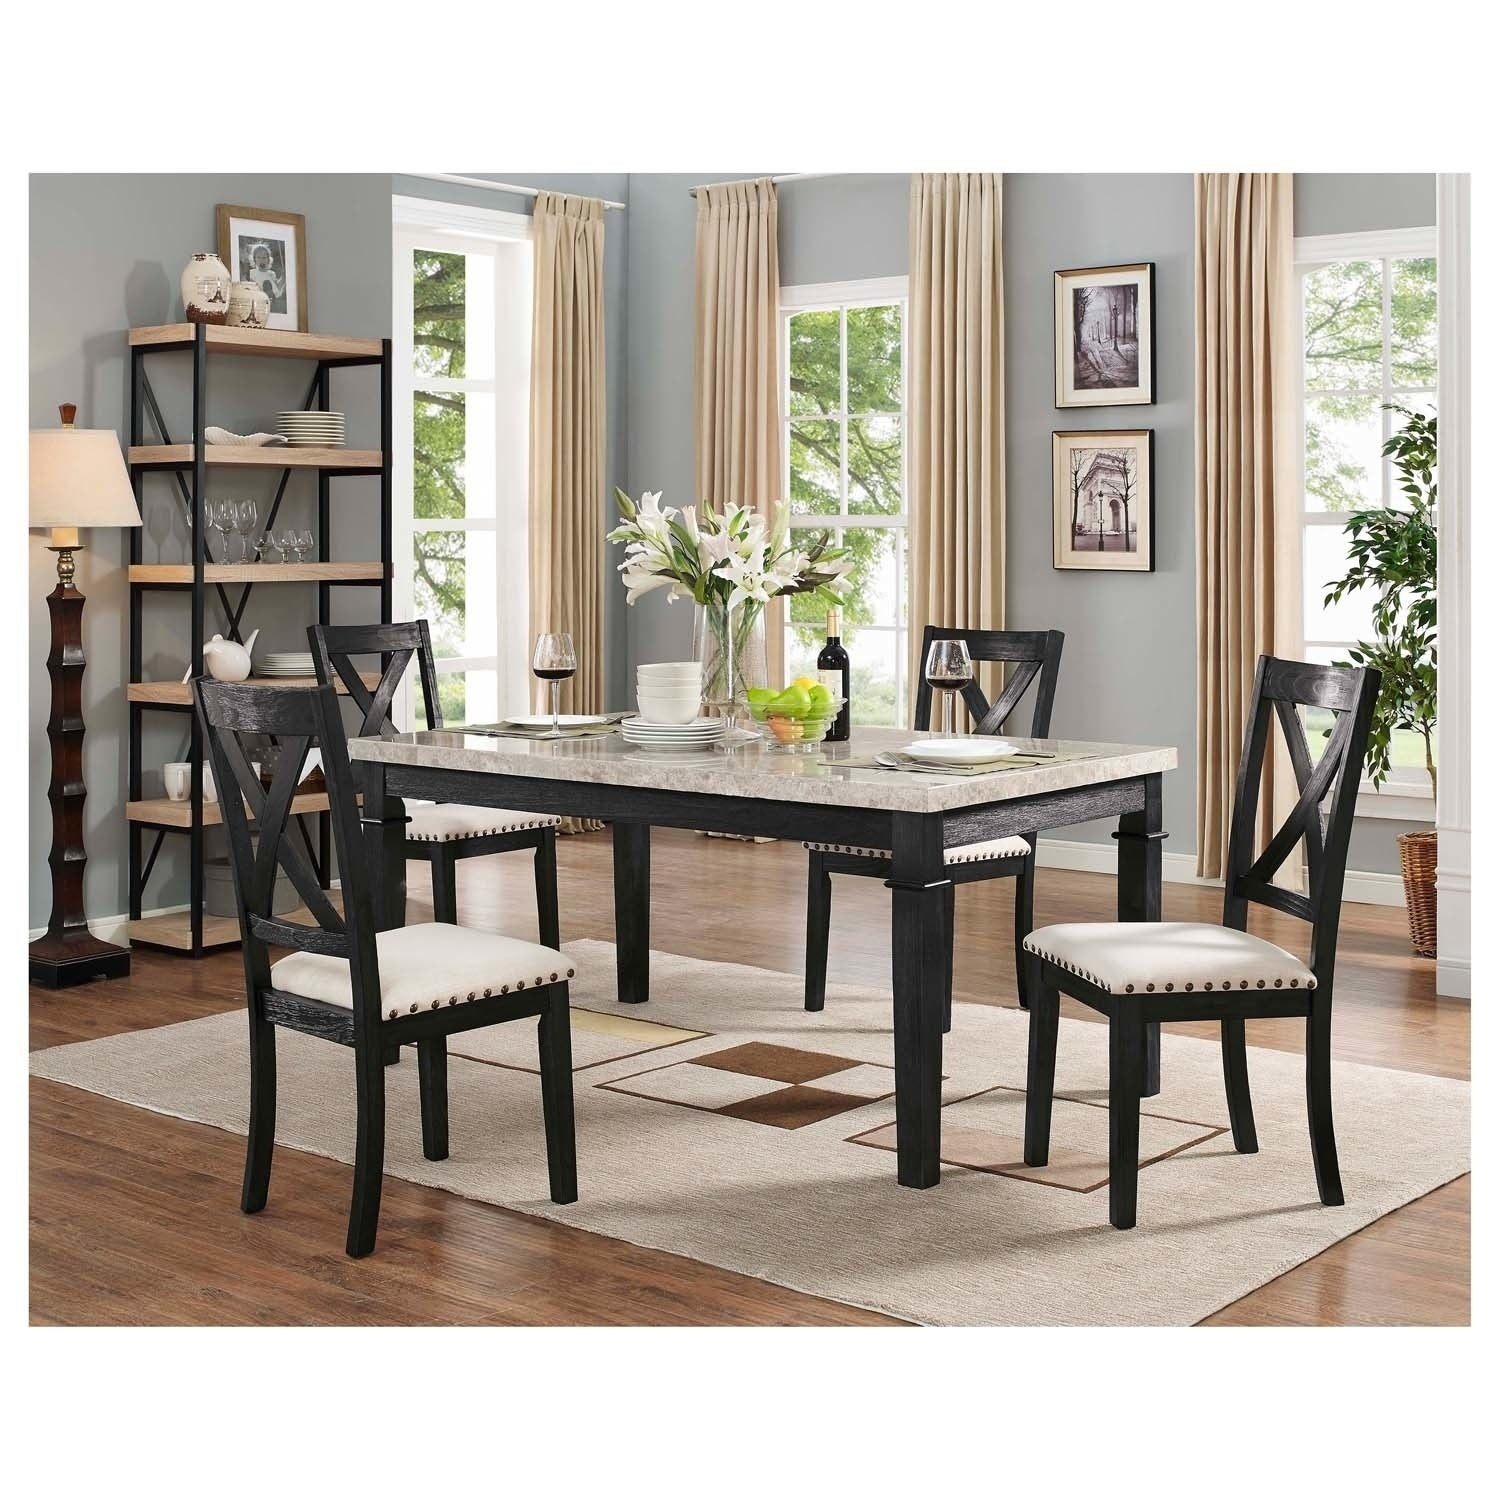 Picket House Furnishings Bradley 5PC Dining Set Table U0026 4 X Back Side Chairs    Free Shipping Today   Overstock   25771106